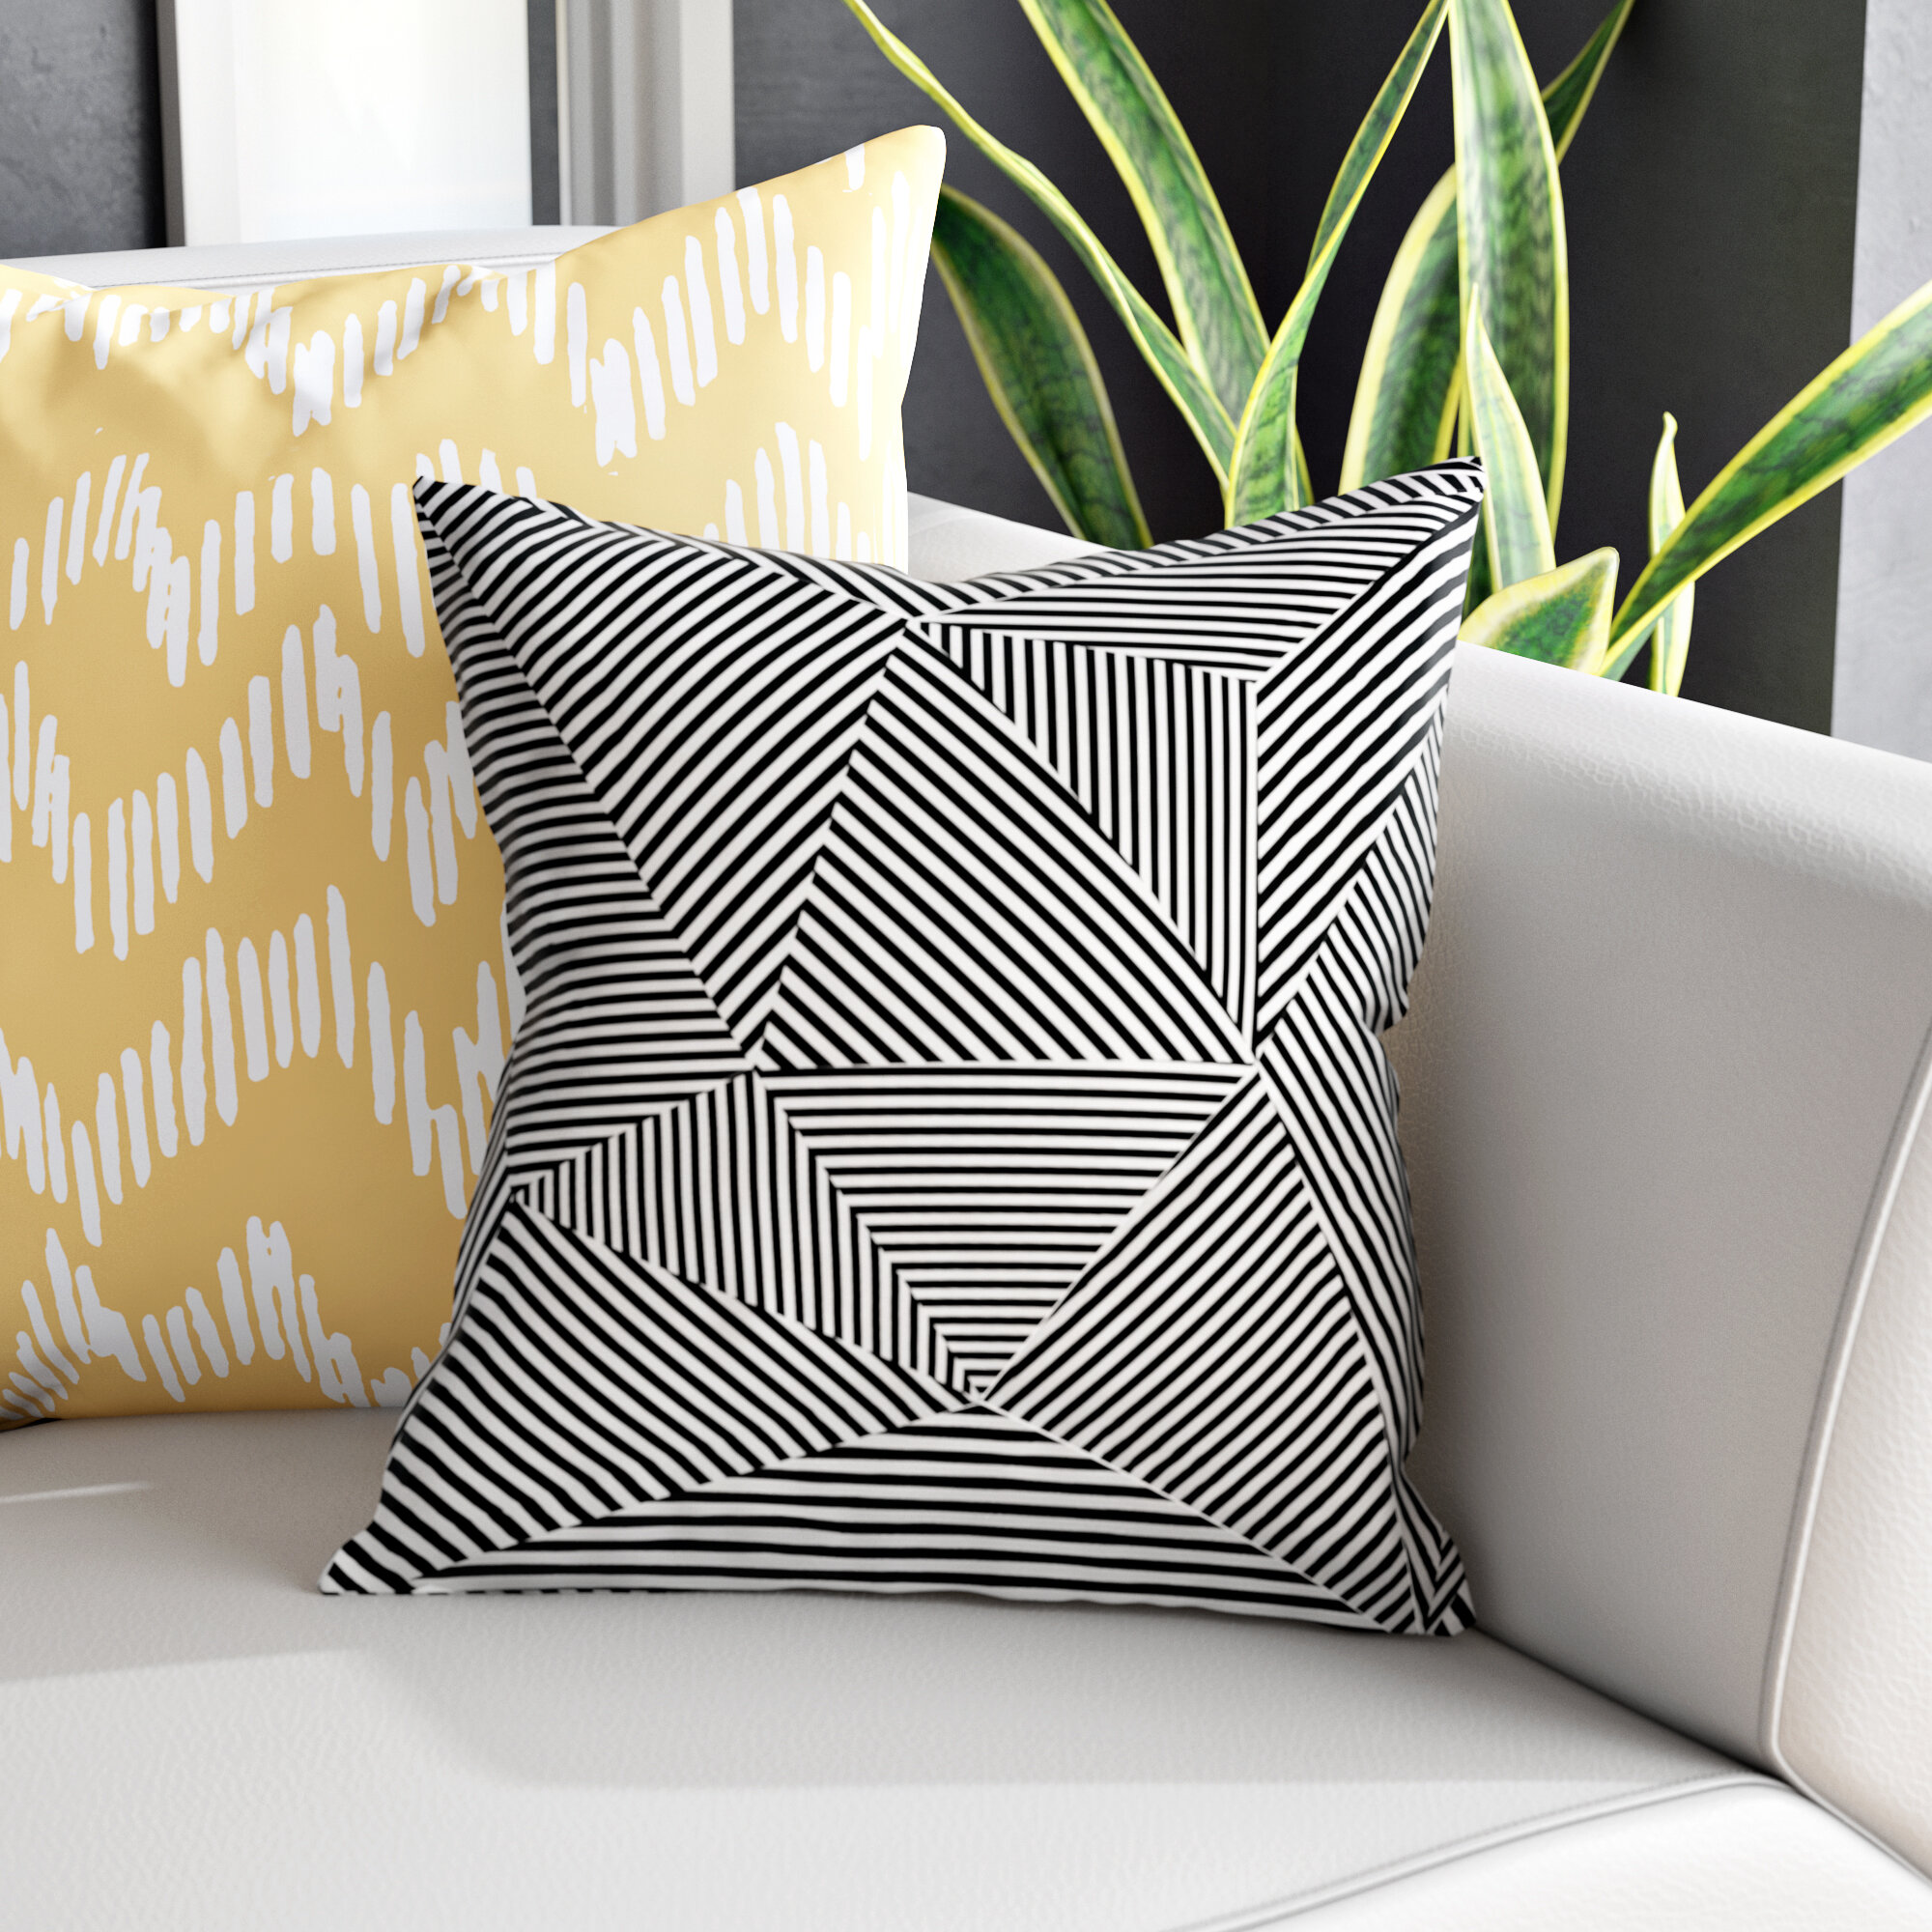 Wade Logan Corbin Outdoor Square Pillow Cover Insert Reviews Wayfair